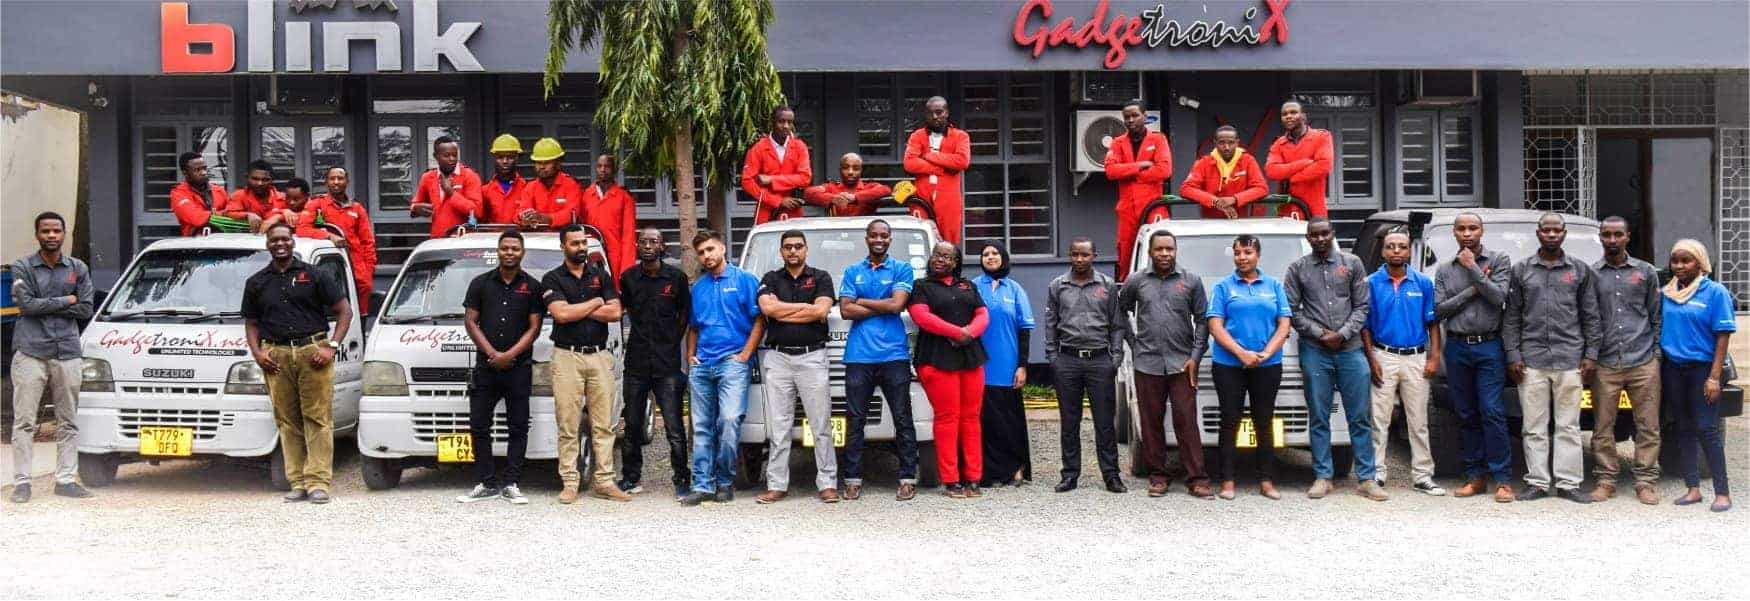 A group picture of Gadgetronix staff